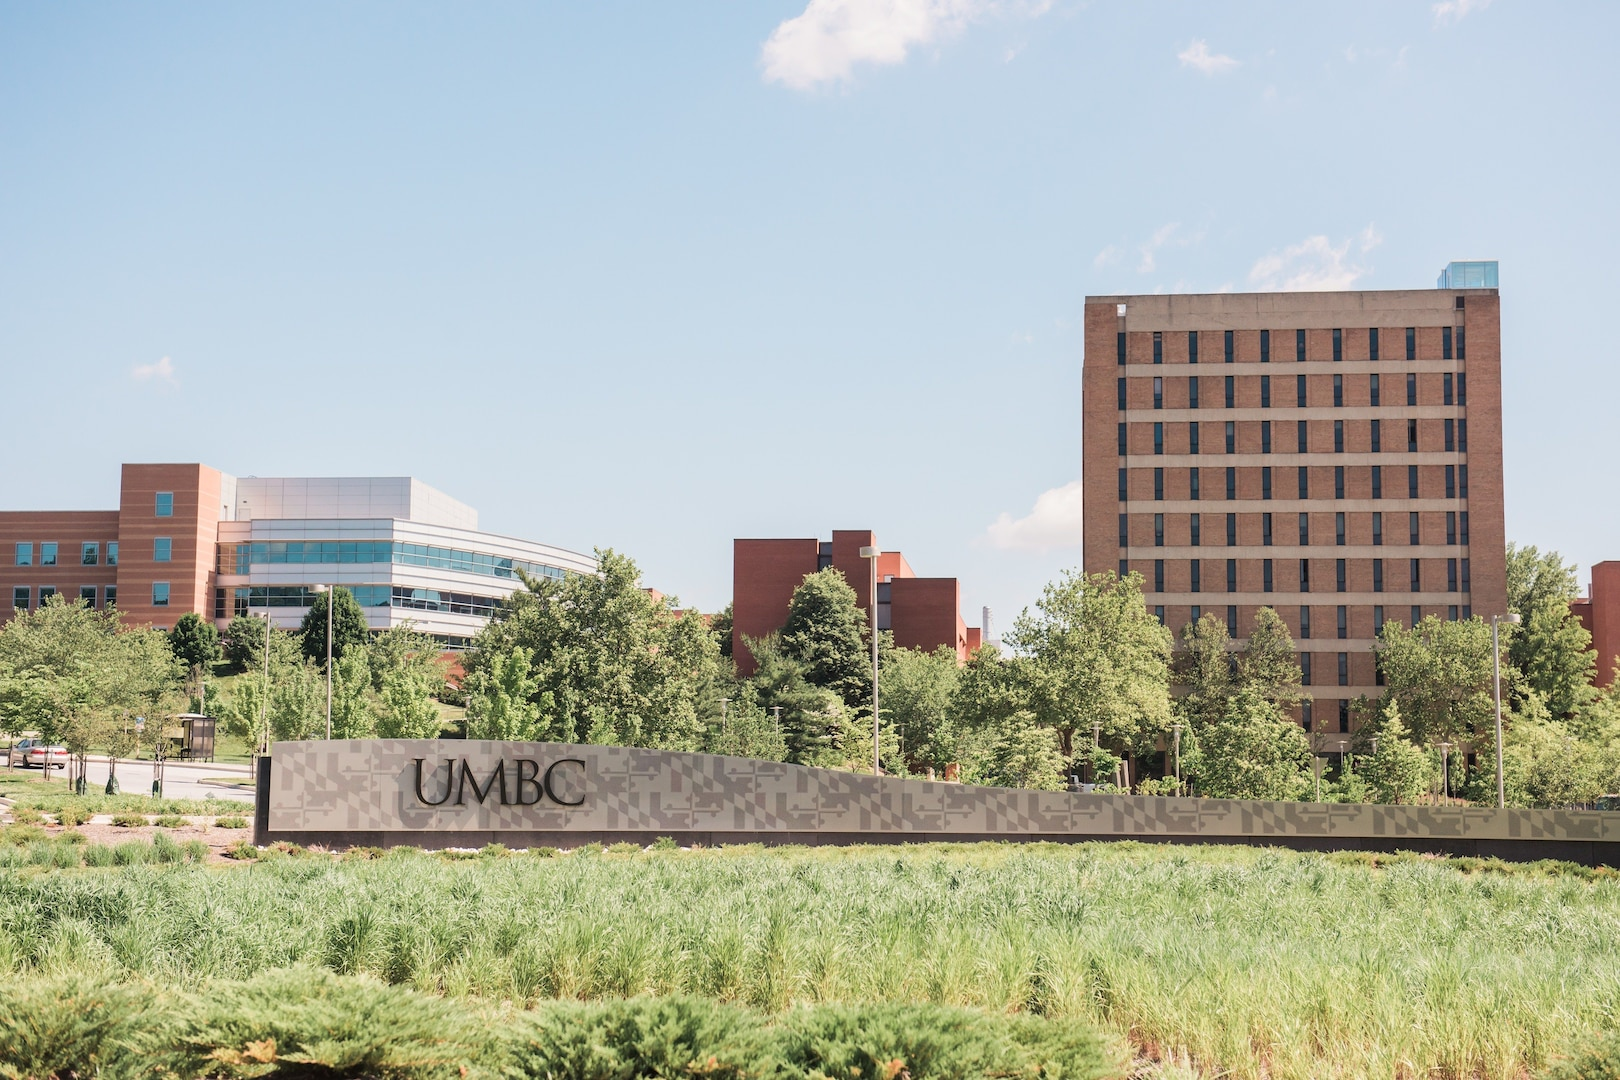 Landscape photo of UMBC sign at entrance to the campus during a sunny day. Three academic buildings are visible behind the sign.